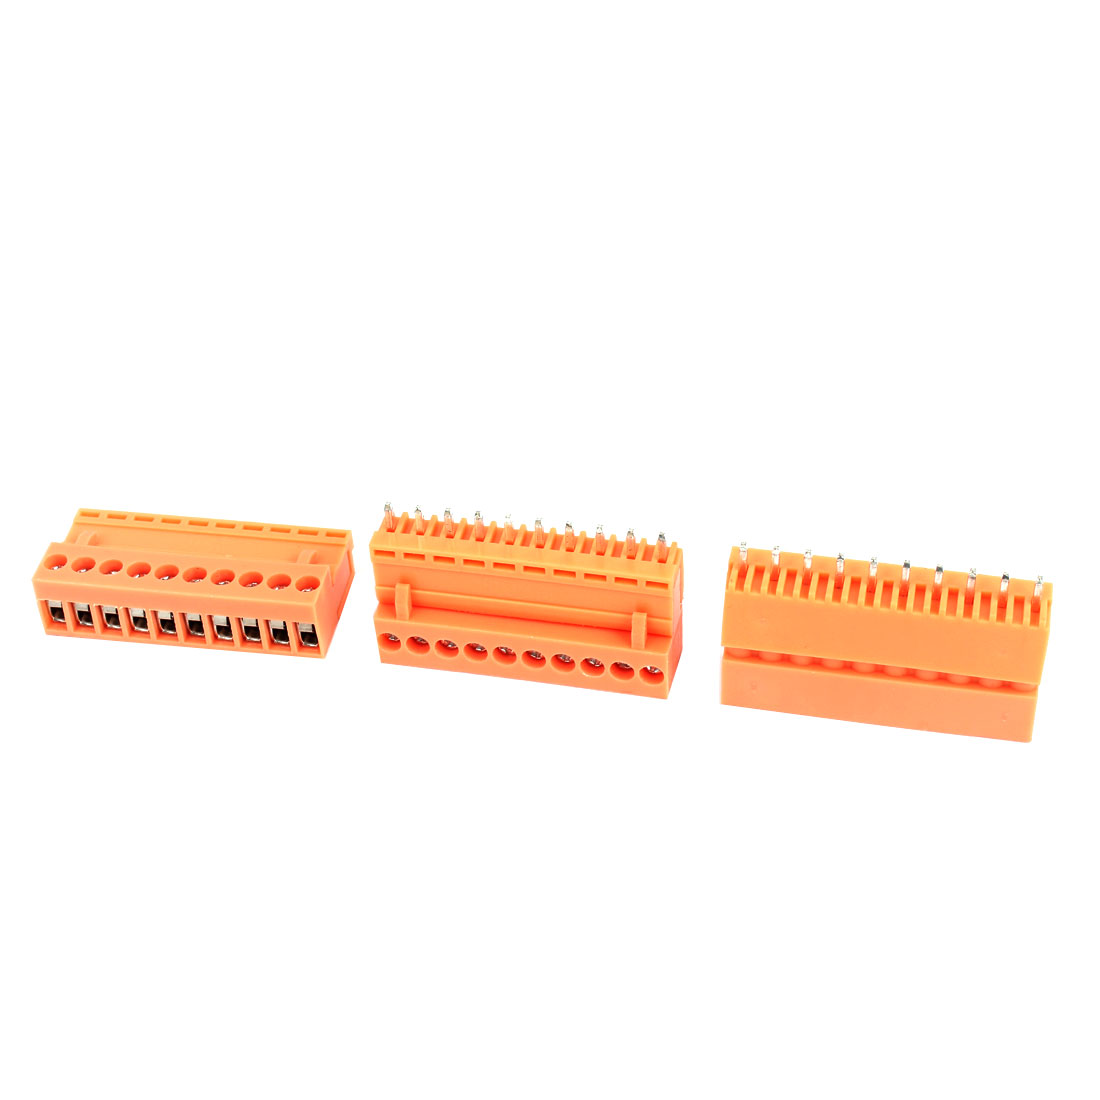 3 Pcs AC 300V 10A 10P Pins PCB Screw Terminal Block Connector 3.96mm Pitch Orange